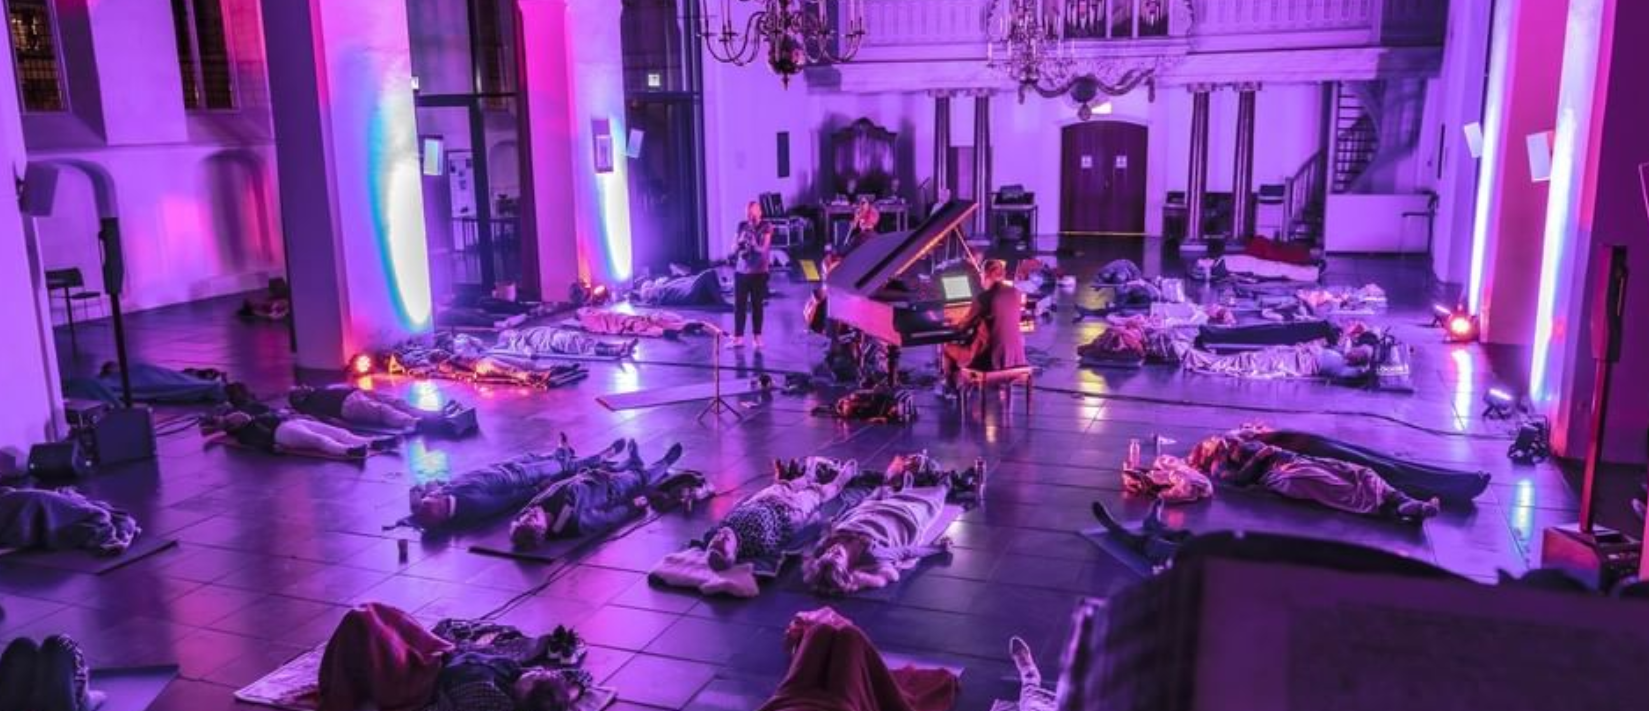 LAY DownTown | Wageningen, yoga mindfulness experience concert